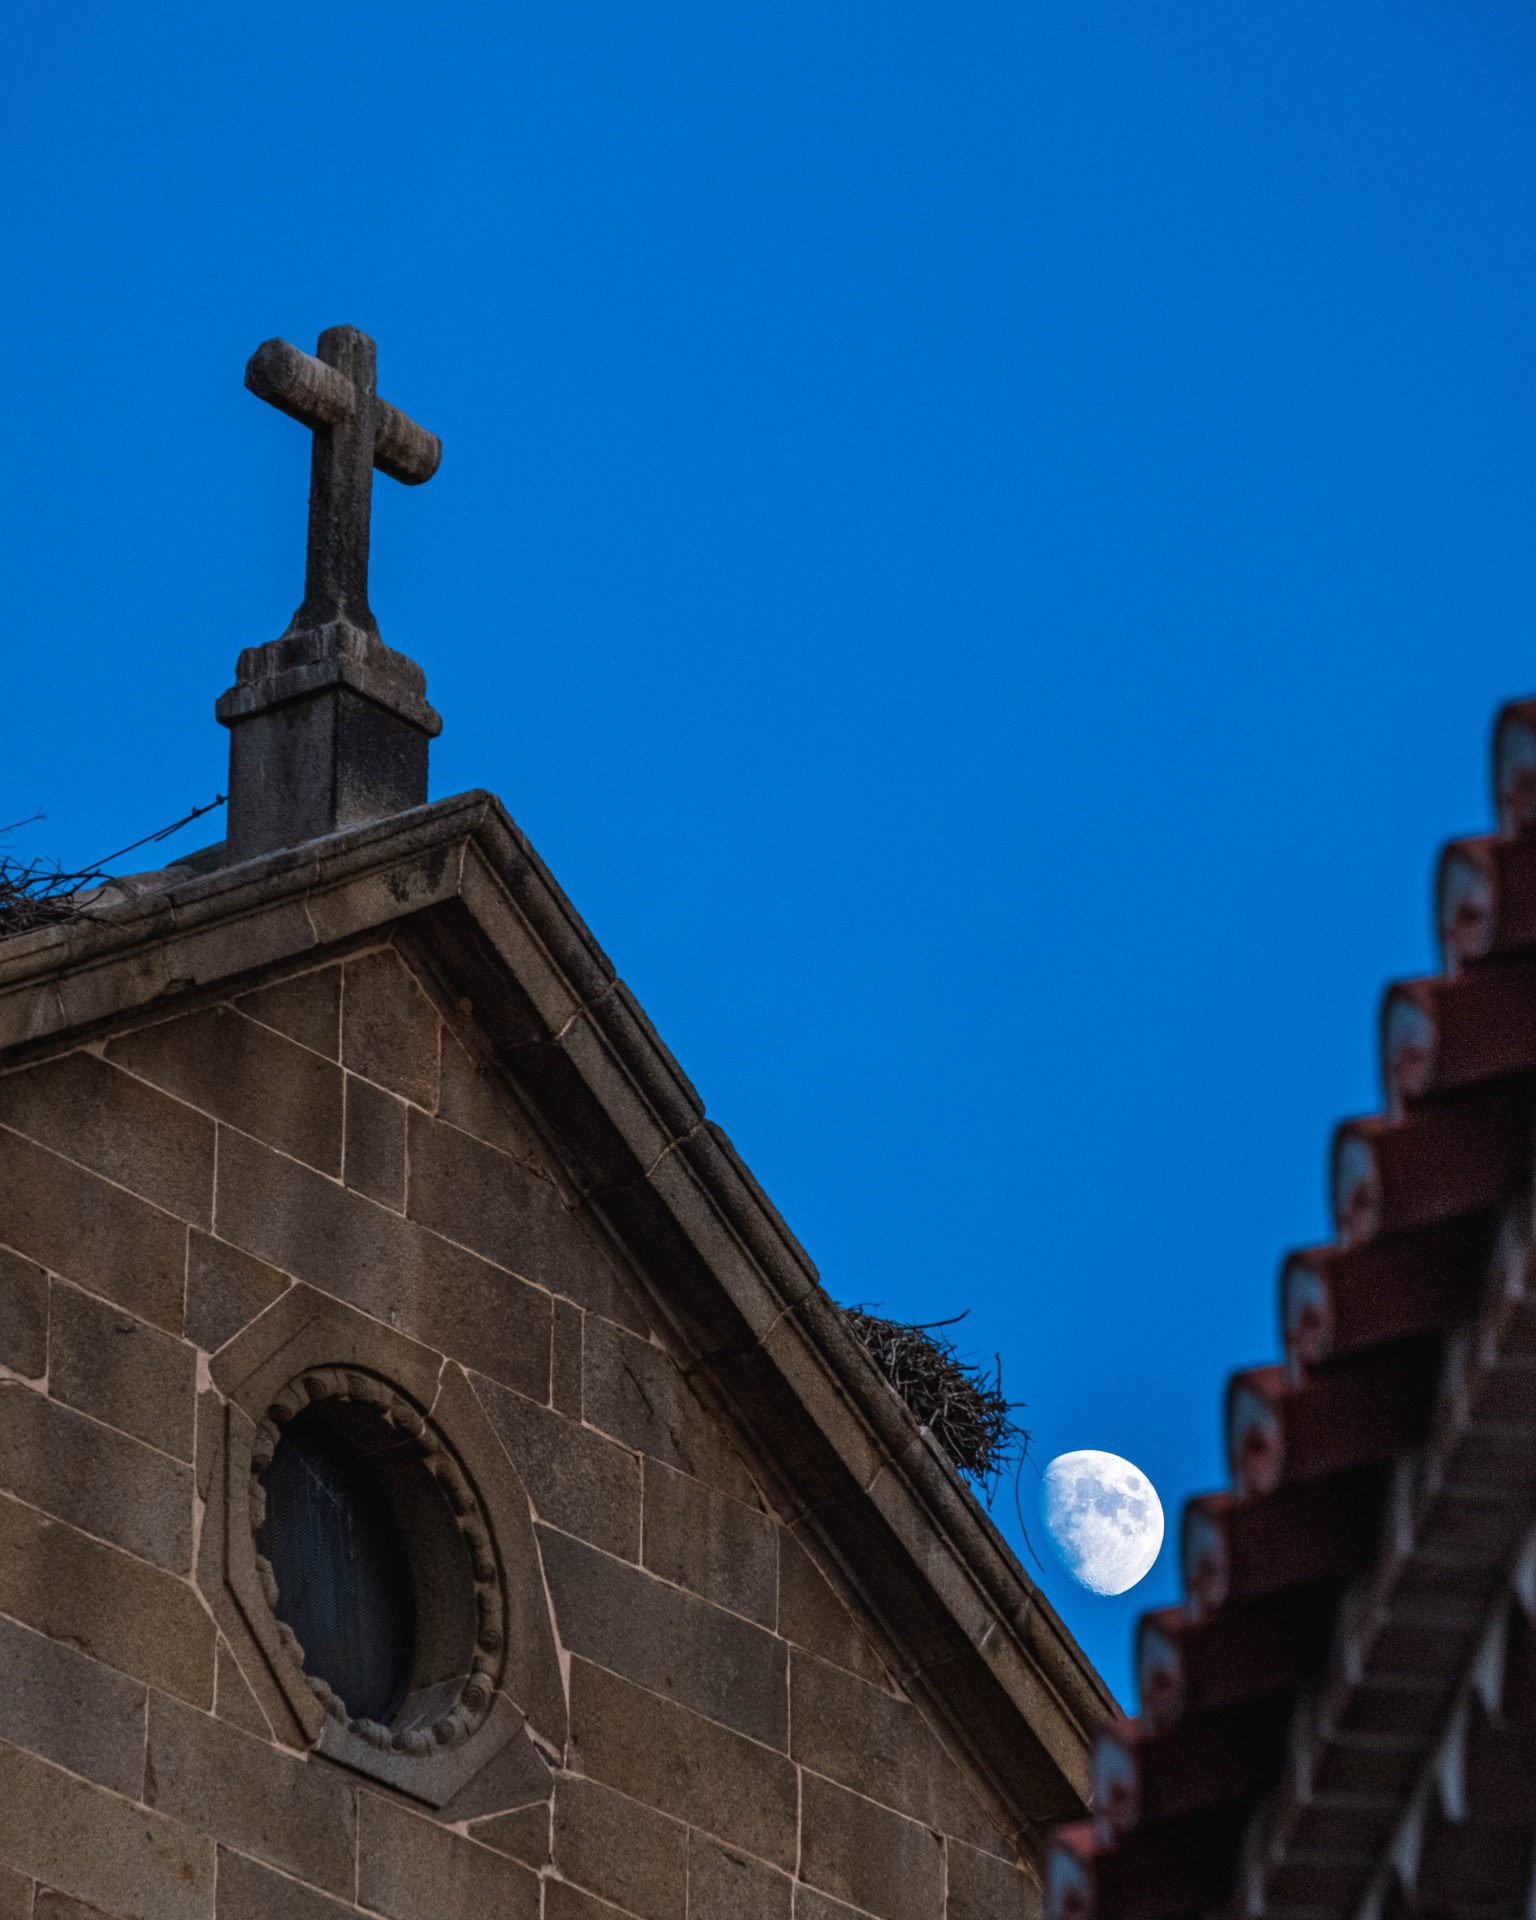 Cross made of stone on top of a church at night with moon in the background photo by Jo Kassis